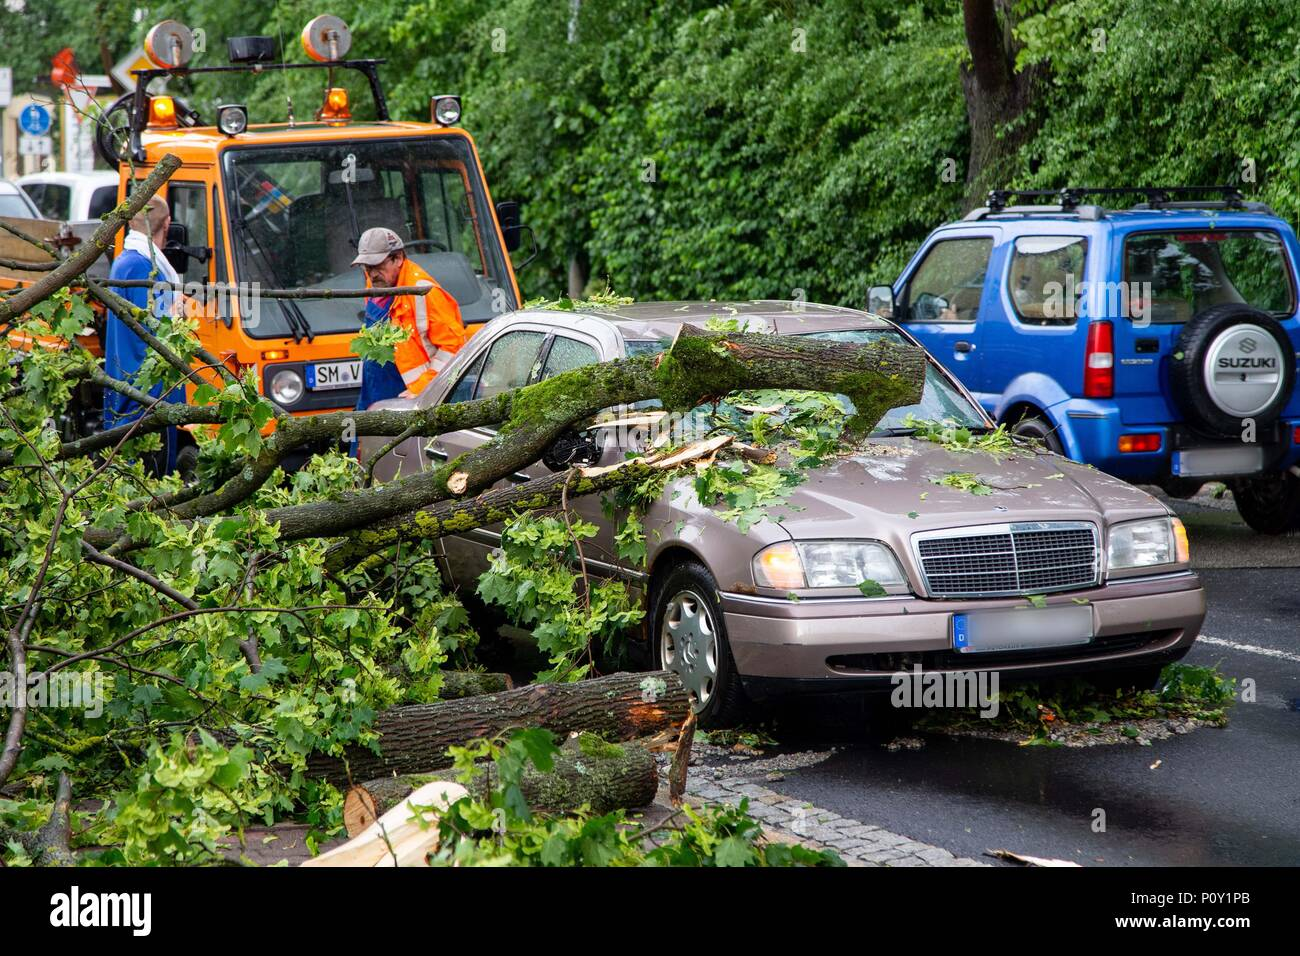 9 June 2018, Meiningen, Germany: Fire fighters clear away uprooted trees which have crushed a car. Heavy rainfall and tempestous winds have caused floodings in several Thuringian districts. Especially affected was Schmalkalden-Meiningen, as the police informed. Photo: Ittig/NEWS5/dpa - ACHTUNG: Autokennzeichen gepixelt - Stock Image